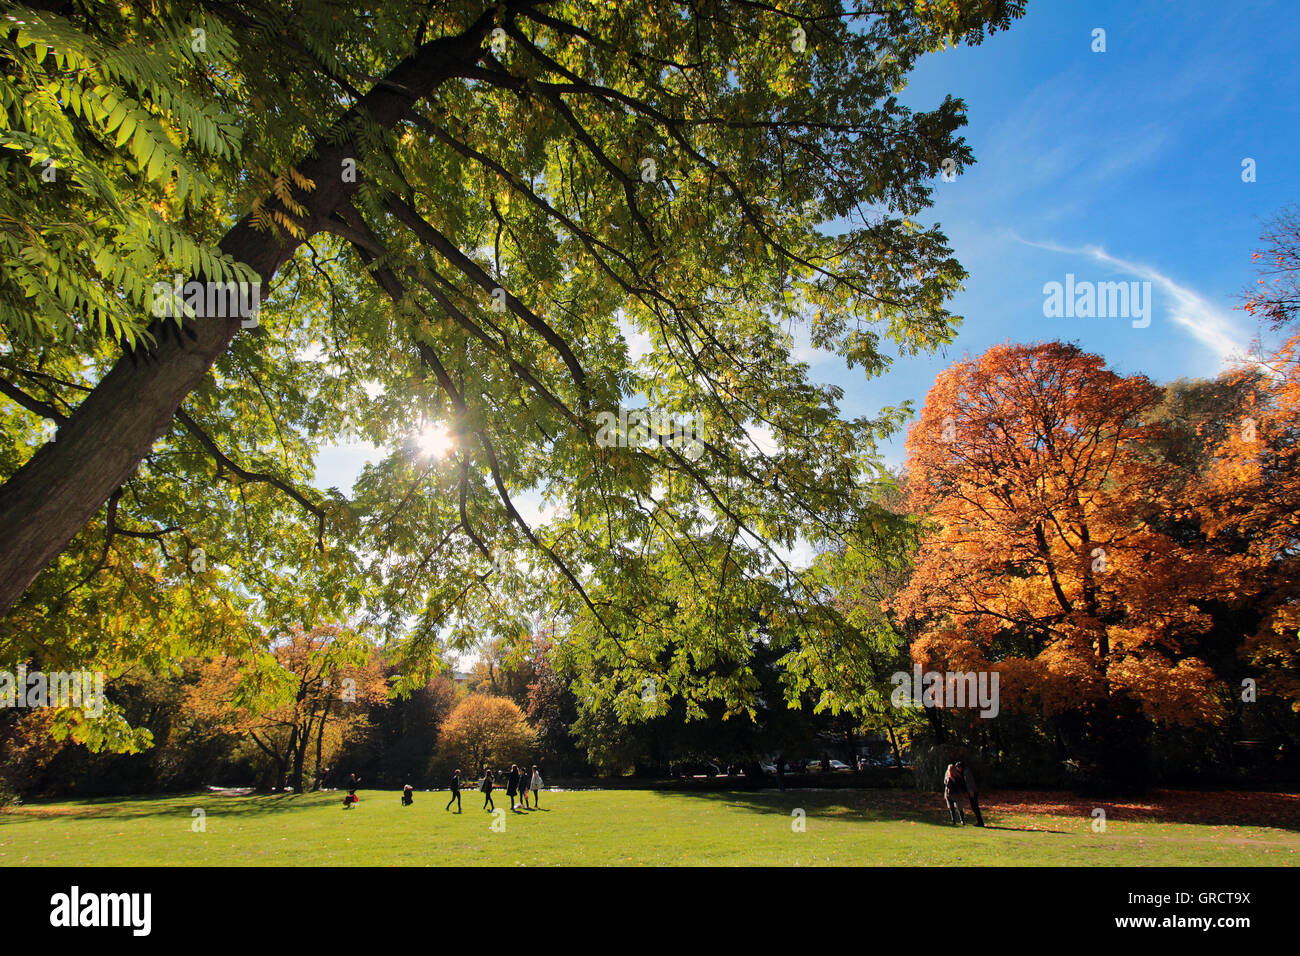 Fall Foliage At Park Englischer Garten In Munich - Stock Image